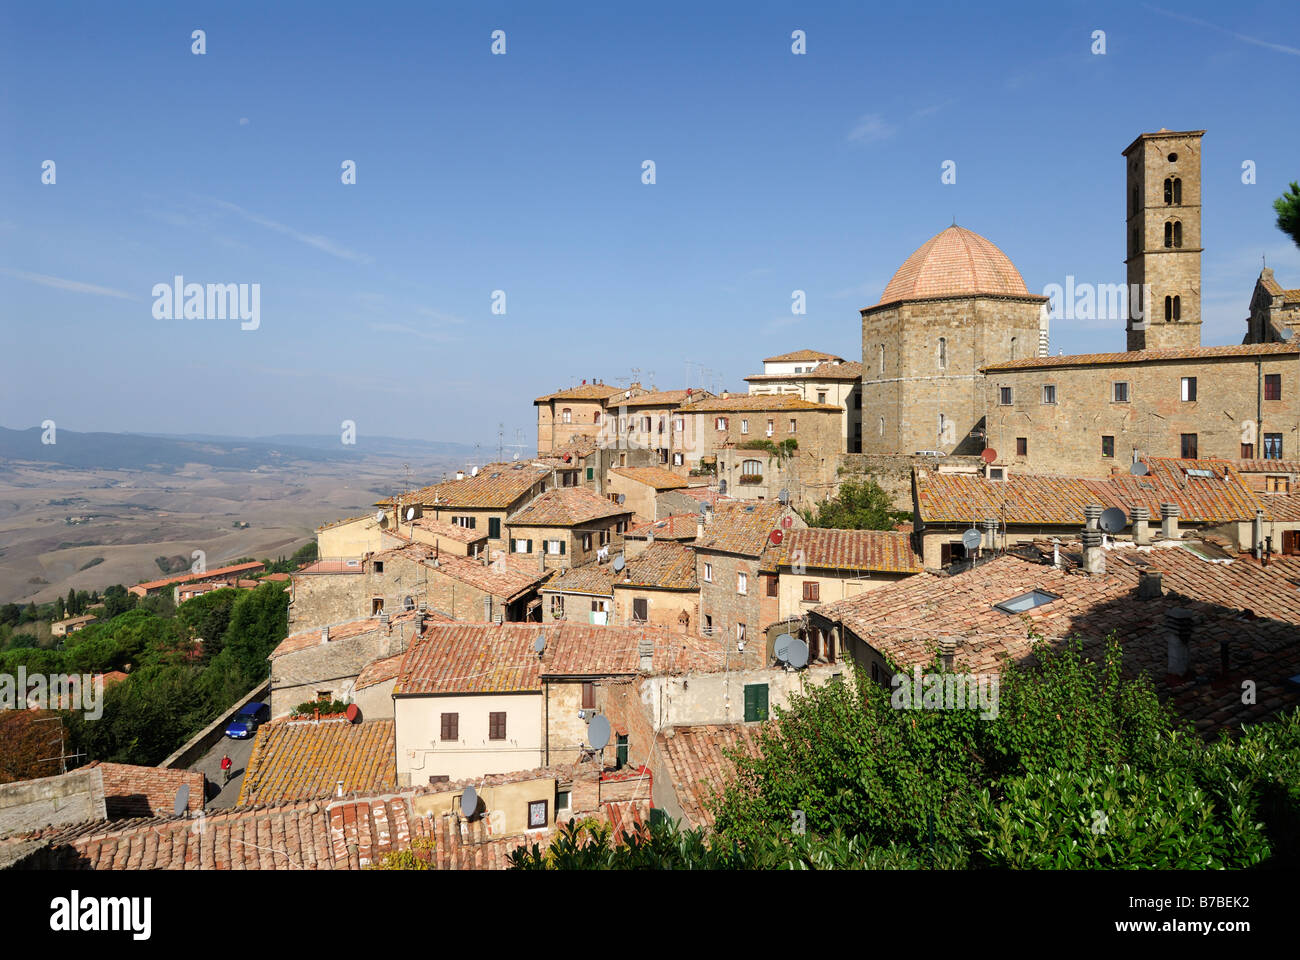 Volterra Tuscany Italy The ancient town of Volterra overlooking the Val di Cecina - Stock Image